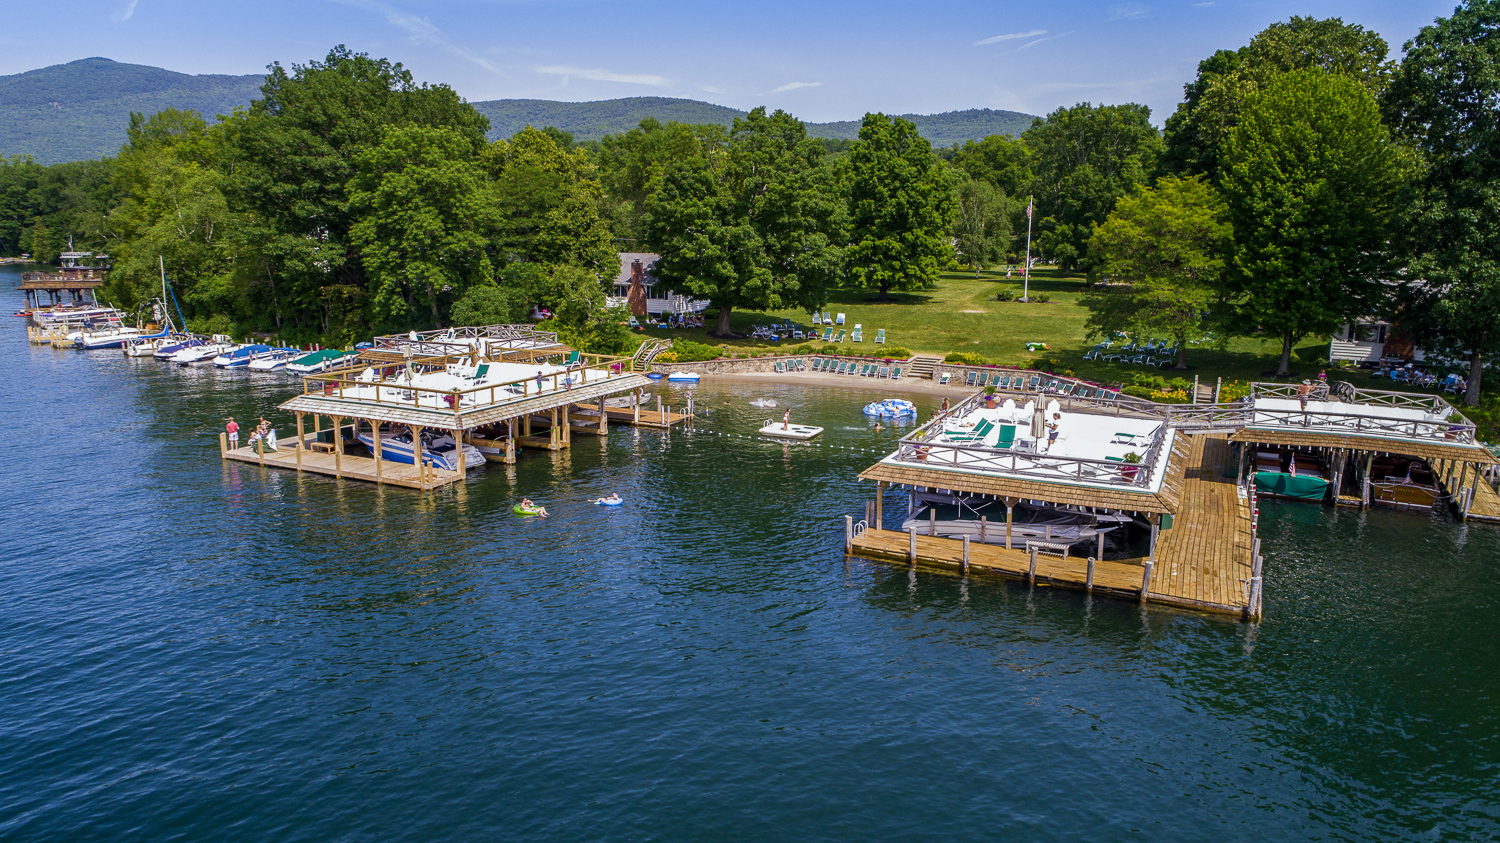 Lake George vacation cabin rental docks and beach on 700 feet of lakefront at Takundewide Cottages